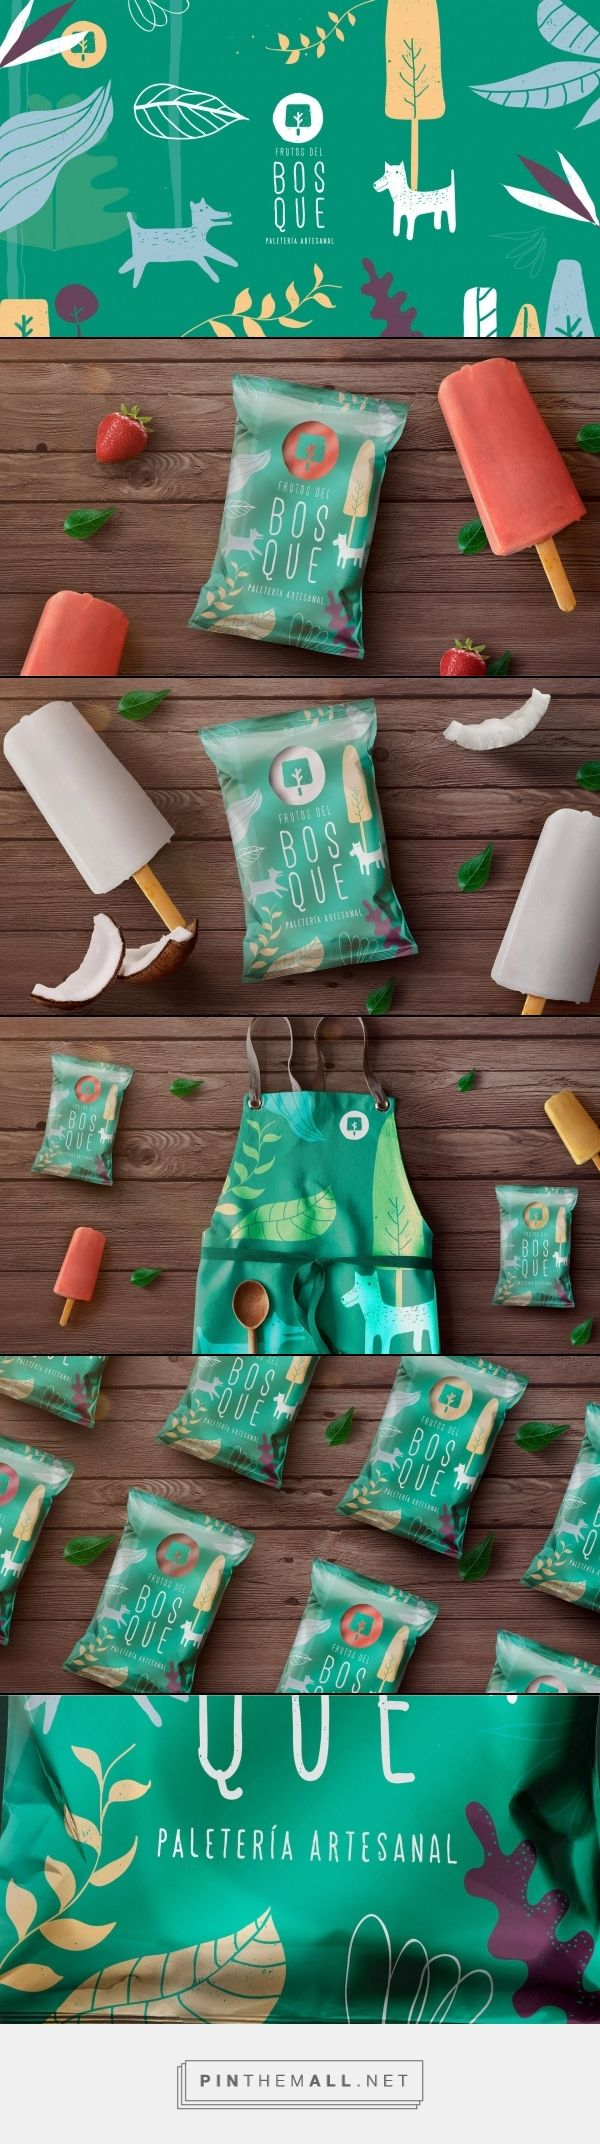 Frutos Del Bosque Packaging by Creamos Agency | Fivestar Branding Agency – Design and Branding Agency & Curated Inspiration Gallery #foodpackaging #packaging #package #design #designinspiration #packaginginspiration